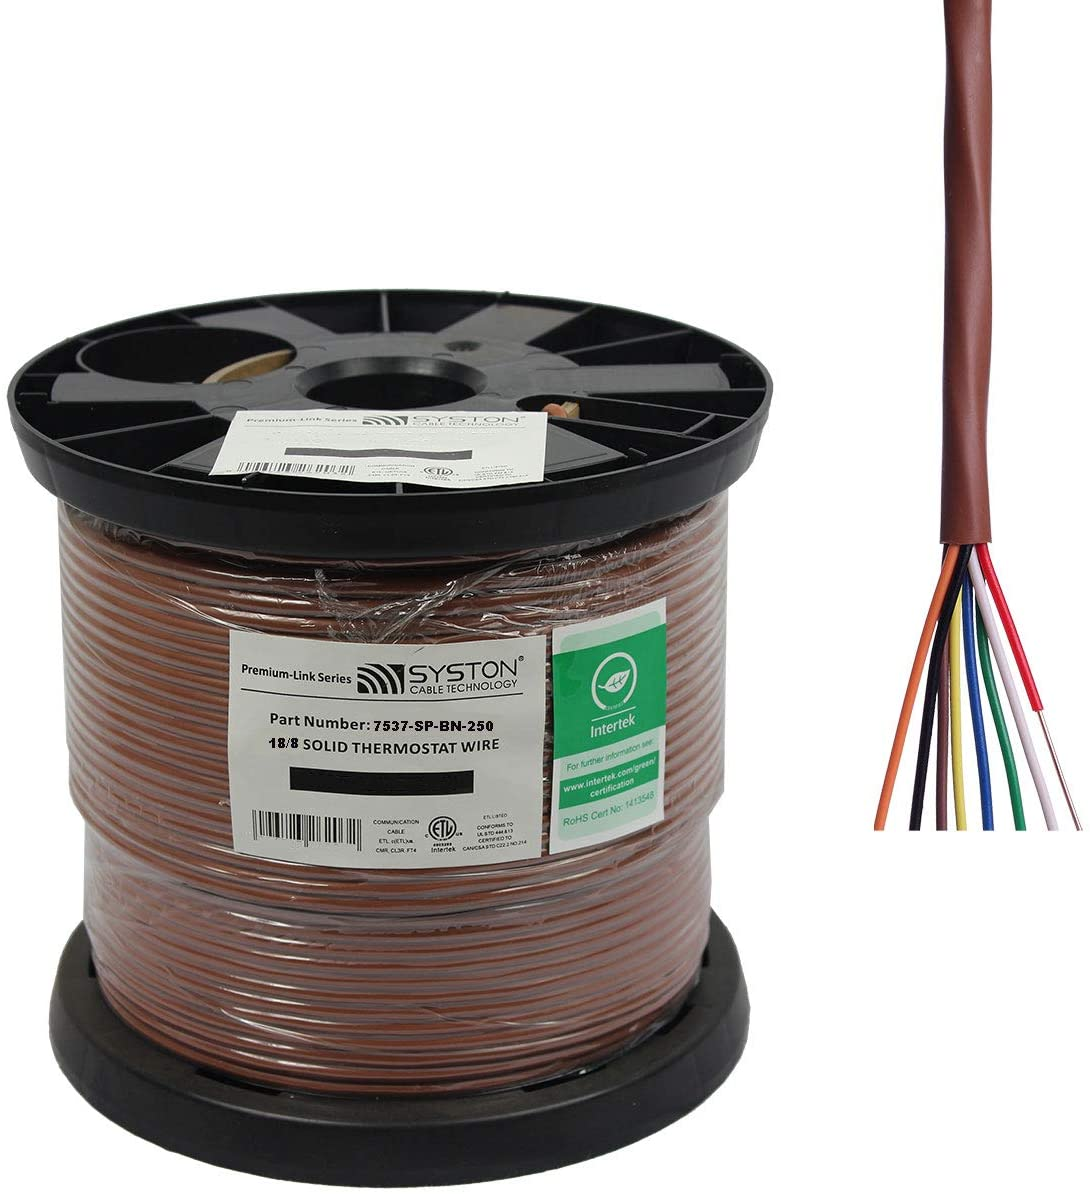 18/8 Solid, HVAC-Thermostat Cable, UL/ETL CL3R/CMR/FT4, 18AWG 8 Pure Copper Conductors, Indoor/Outdoor UV Resistant RoHS Brown 250ft Spool